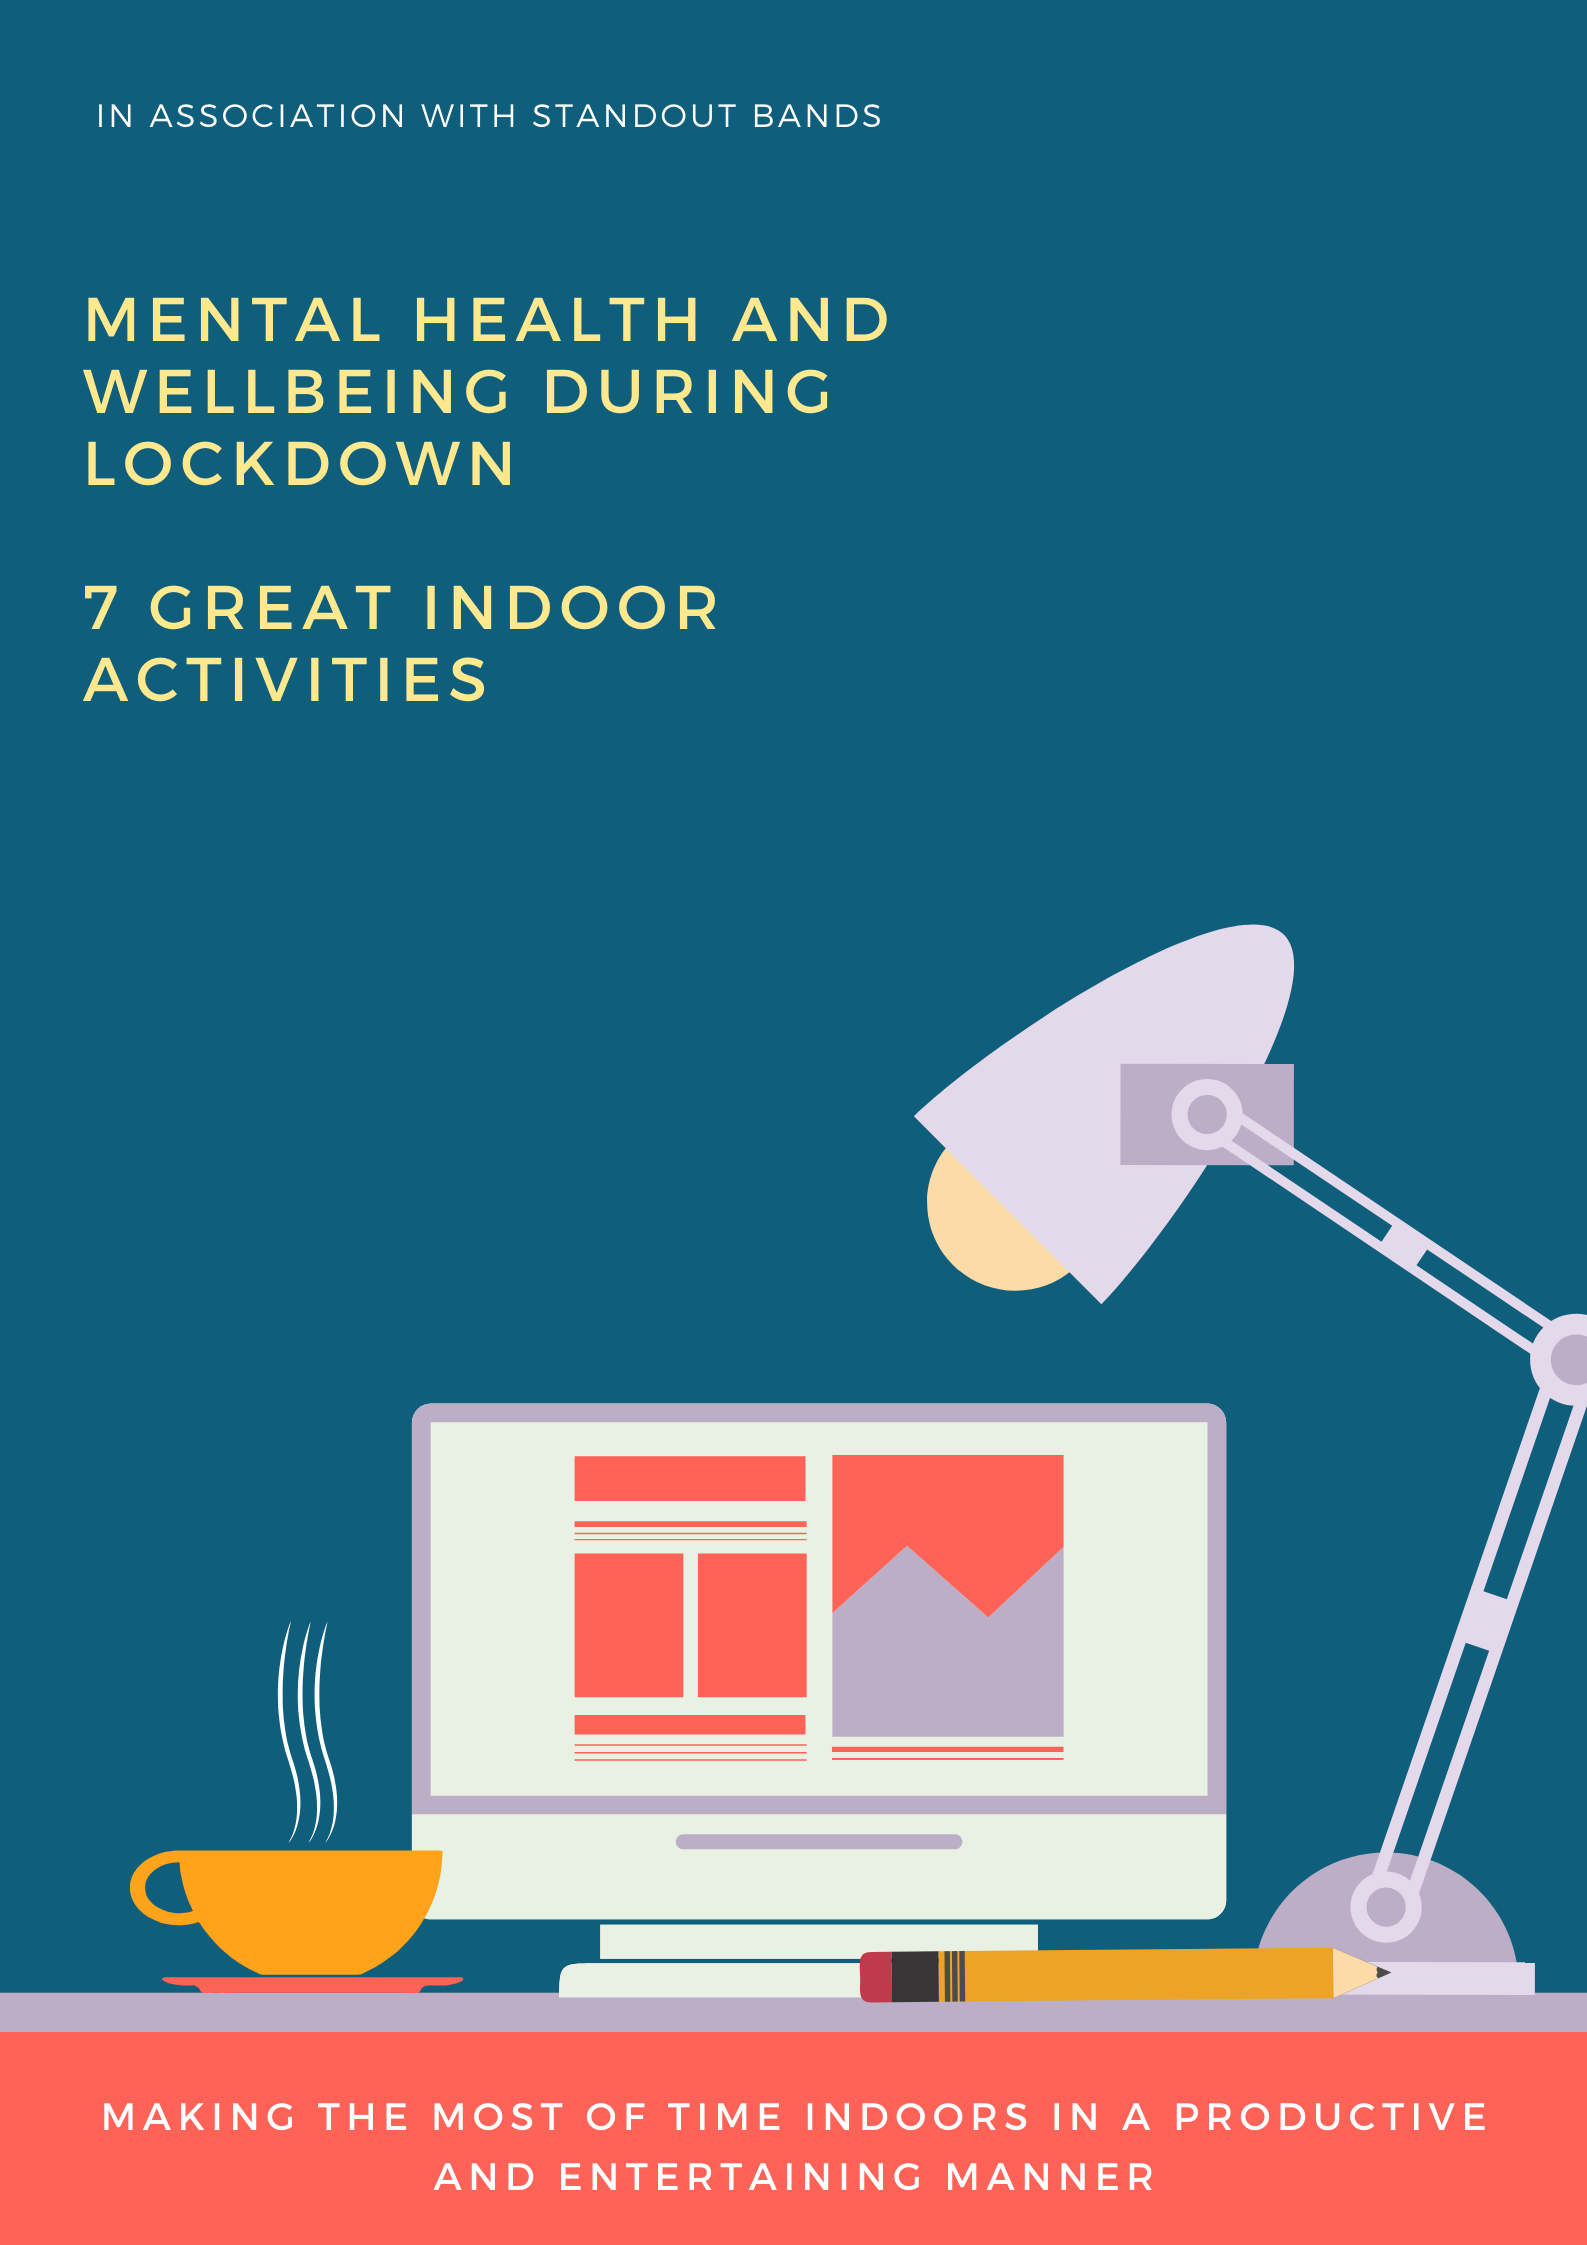 Mental Health and Wellbeing during Lockdown - 7 Great Indoor Activities